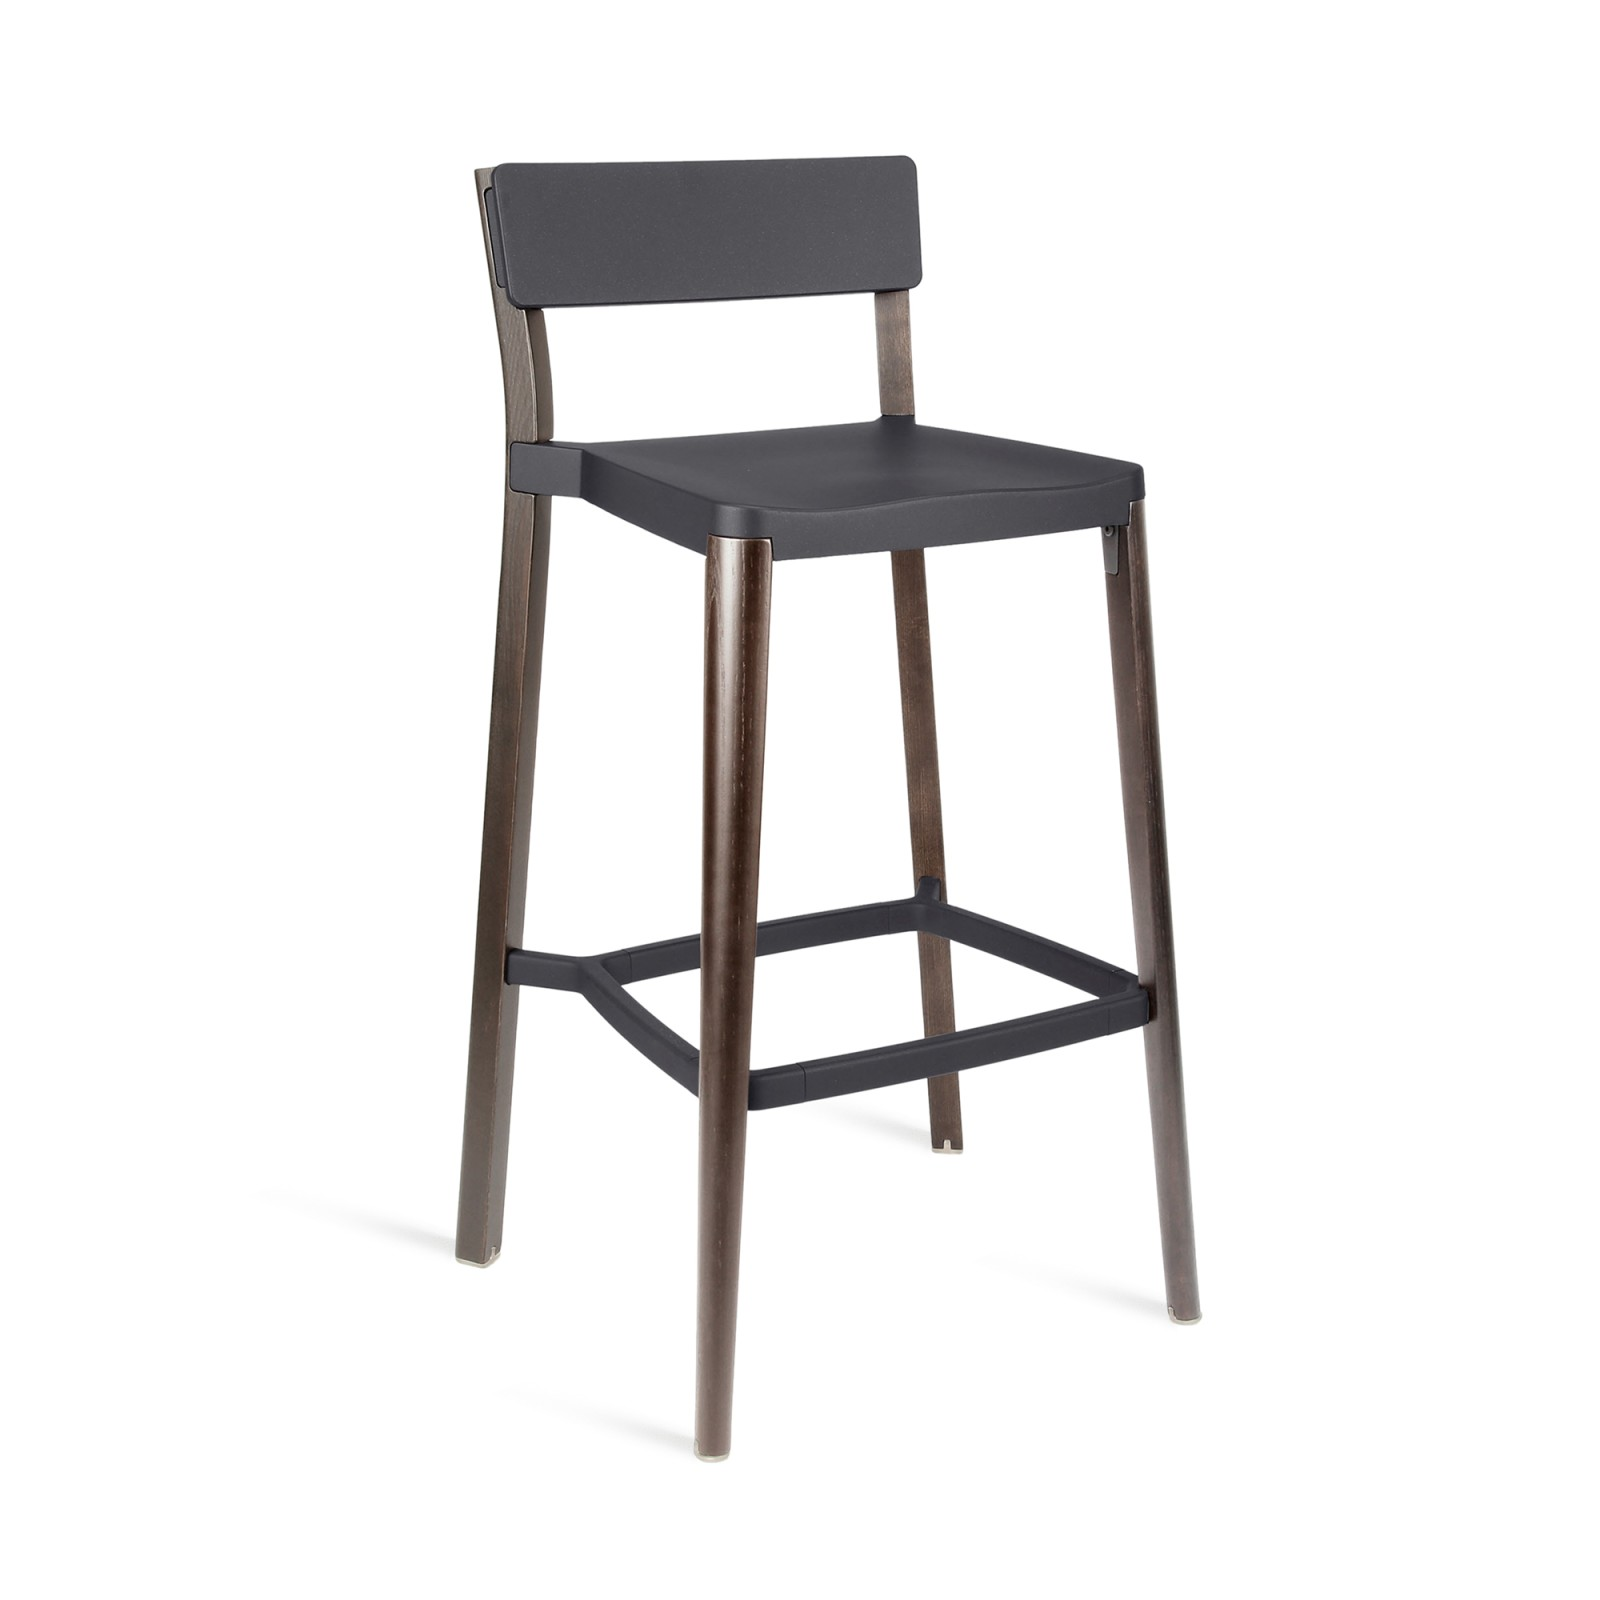 Lancaster Barstool Dark Grey, Dark Wood Base, Without Seat Pad, Without Back Pad